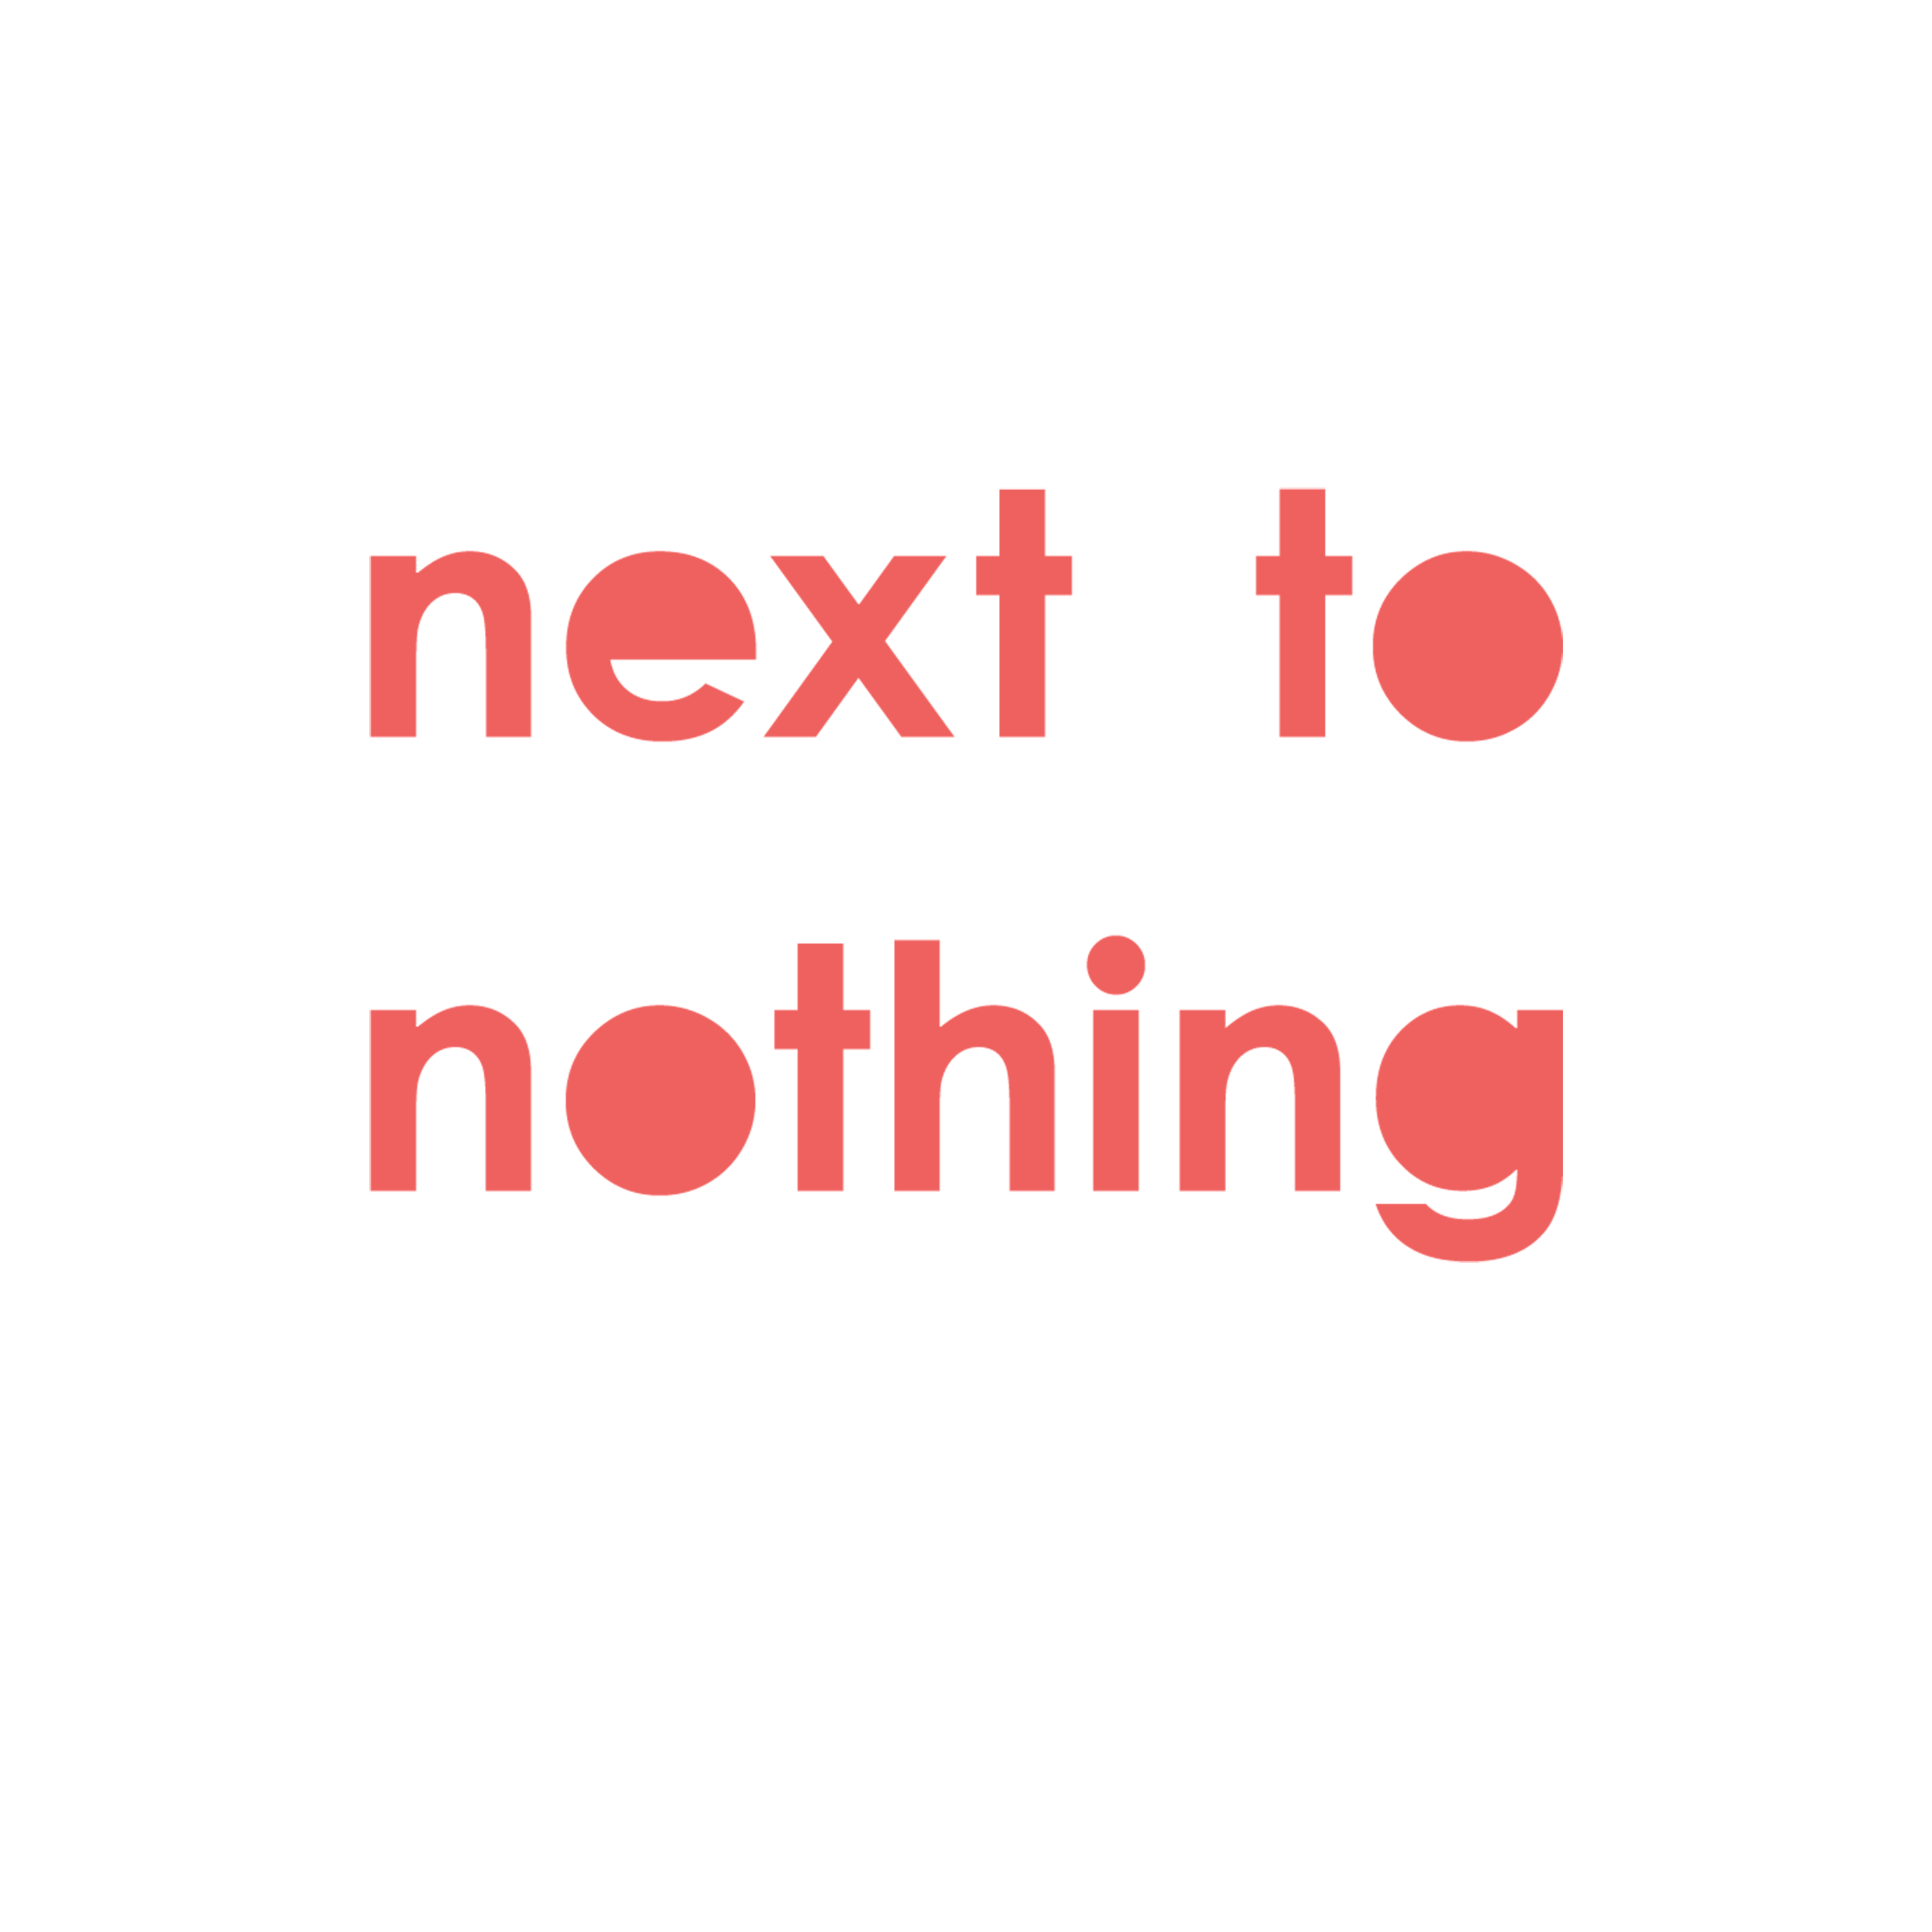 Next To Nothing by Linus Hunkeler Graphic Design Nicole Pfister